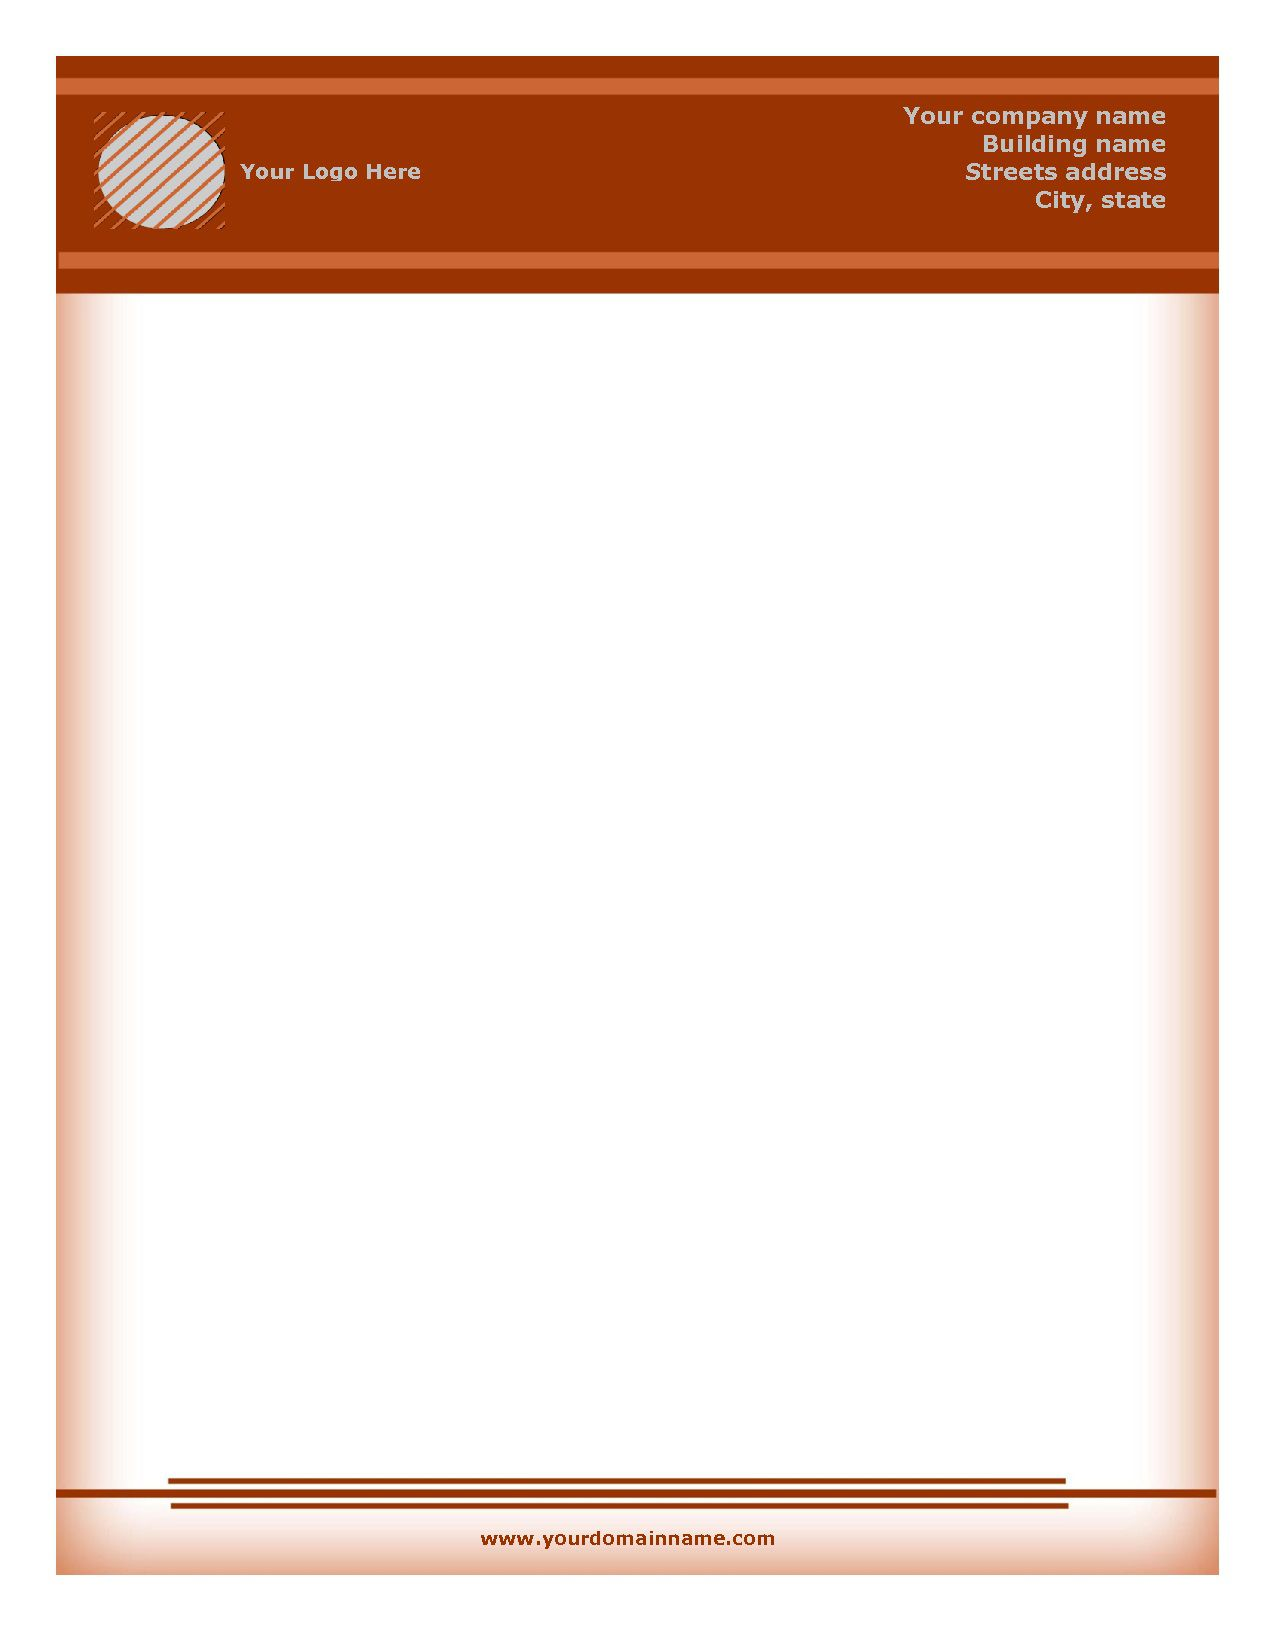 002 Marvelou Free Letterhead Template Download High Definition  Word Psd SampleFull